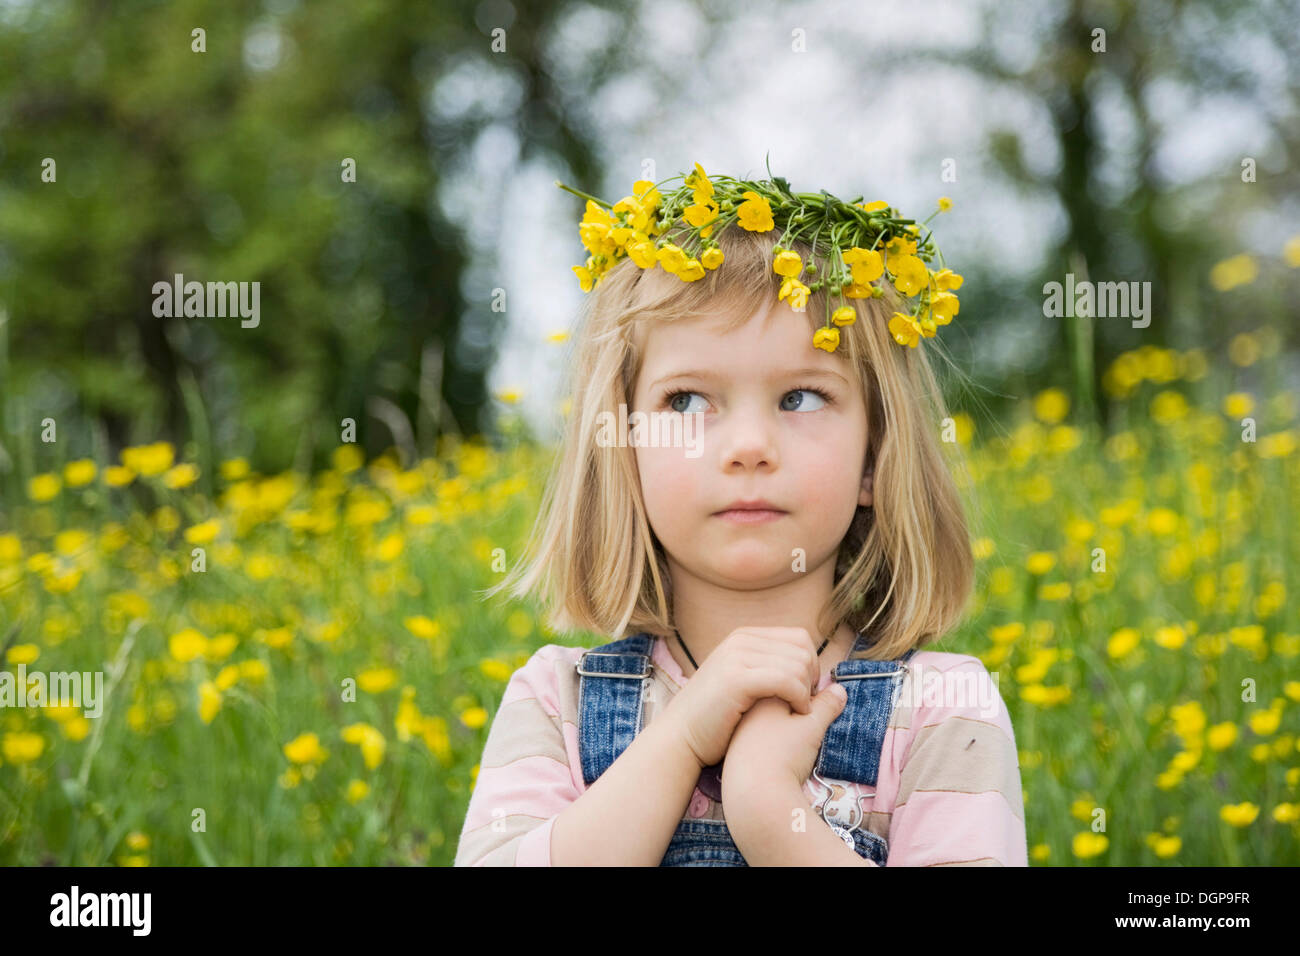 Girl wearing a floral wreath on her head, with clasped hands and a questioning look, portrait - Stock Image